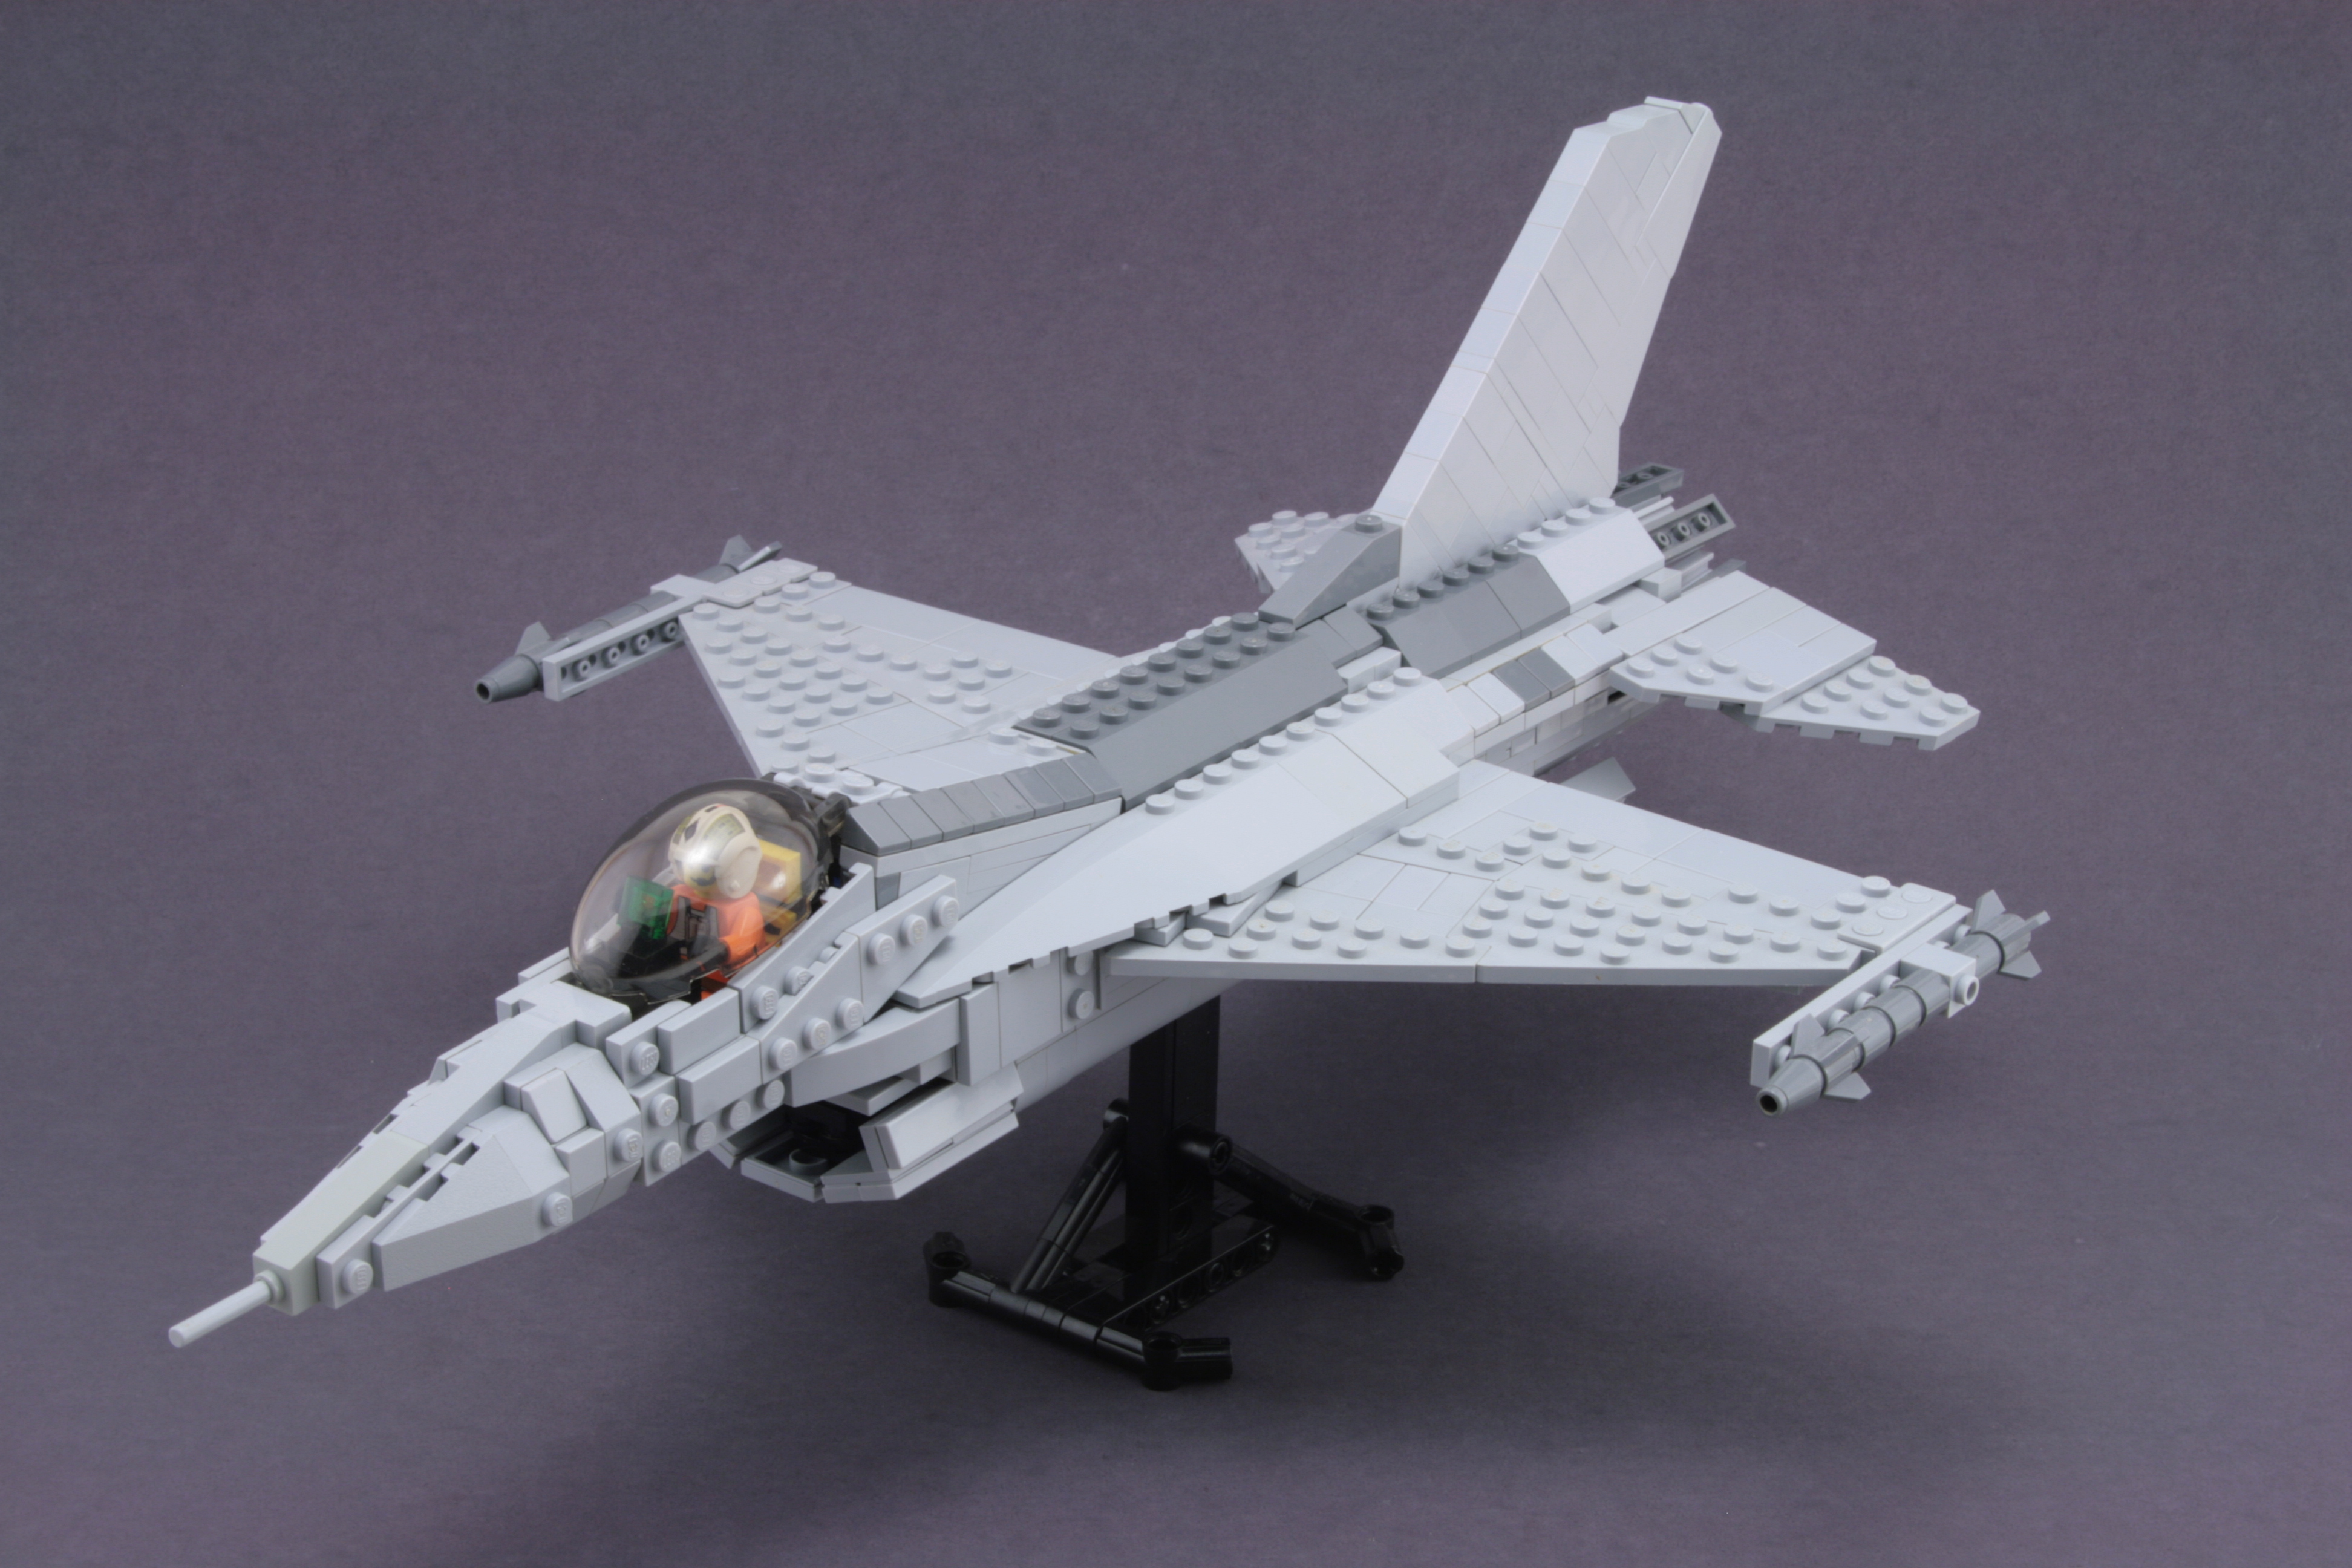 File LEGO F 16 Fighting Falcon jpg   Wikimedia Commons File LEGO F 16 Fighting Falcon jpg